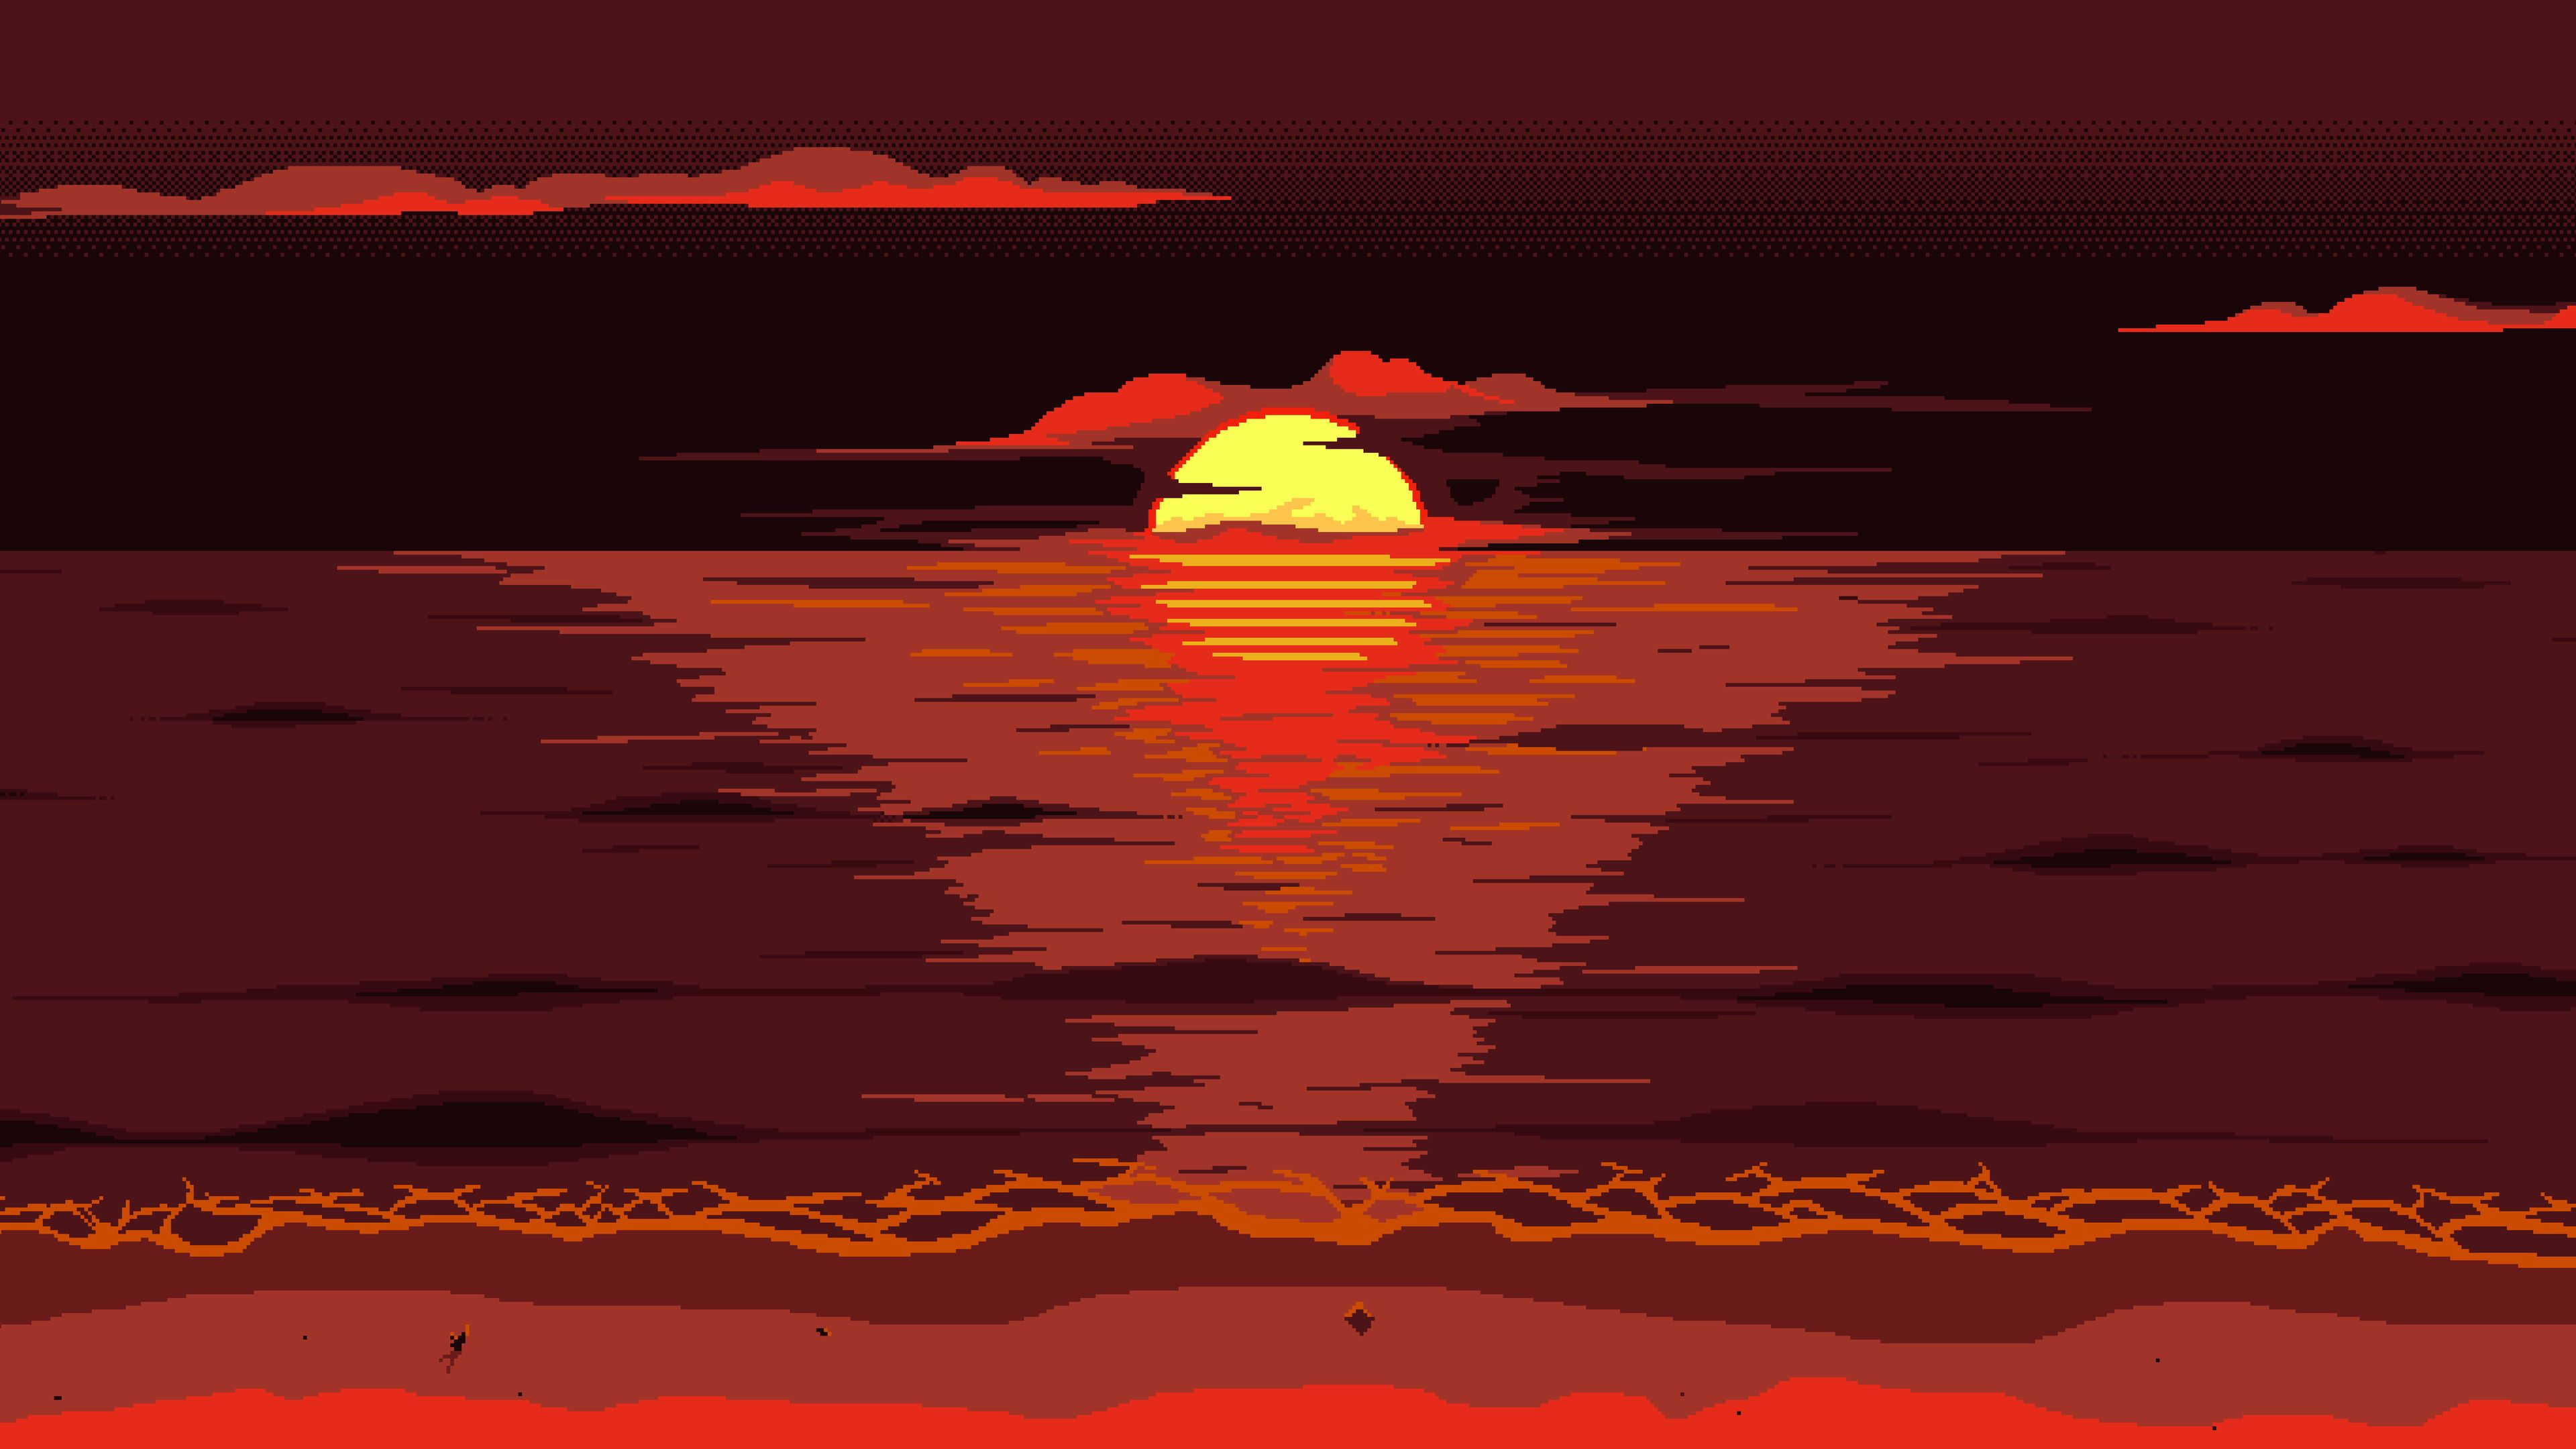 Red Dark Pixel Art Sunset 4k Sunset Wallpapers Minimalist Wallpapers Minimalism Wallpapers Hd Wallpapers Hd Sunset Wallpaper Pixel Art Minimalist Wallpaper